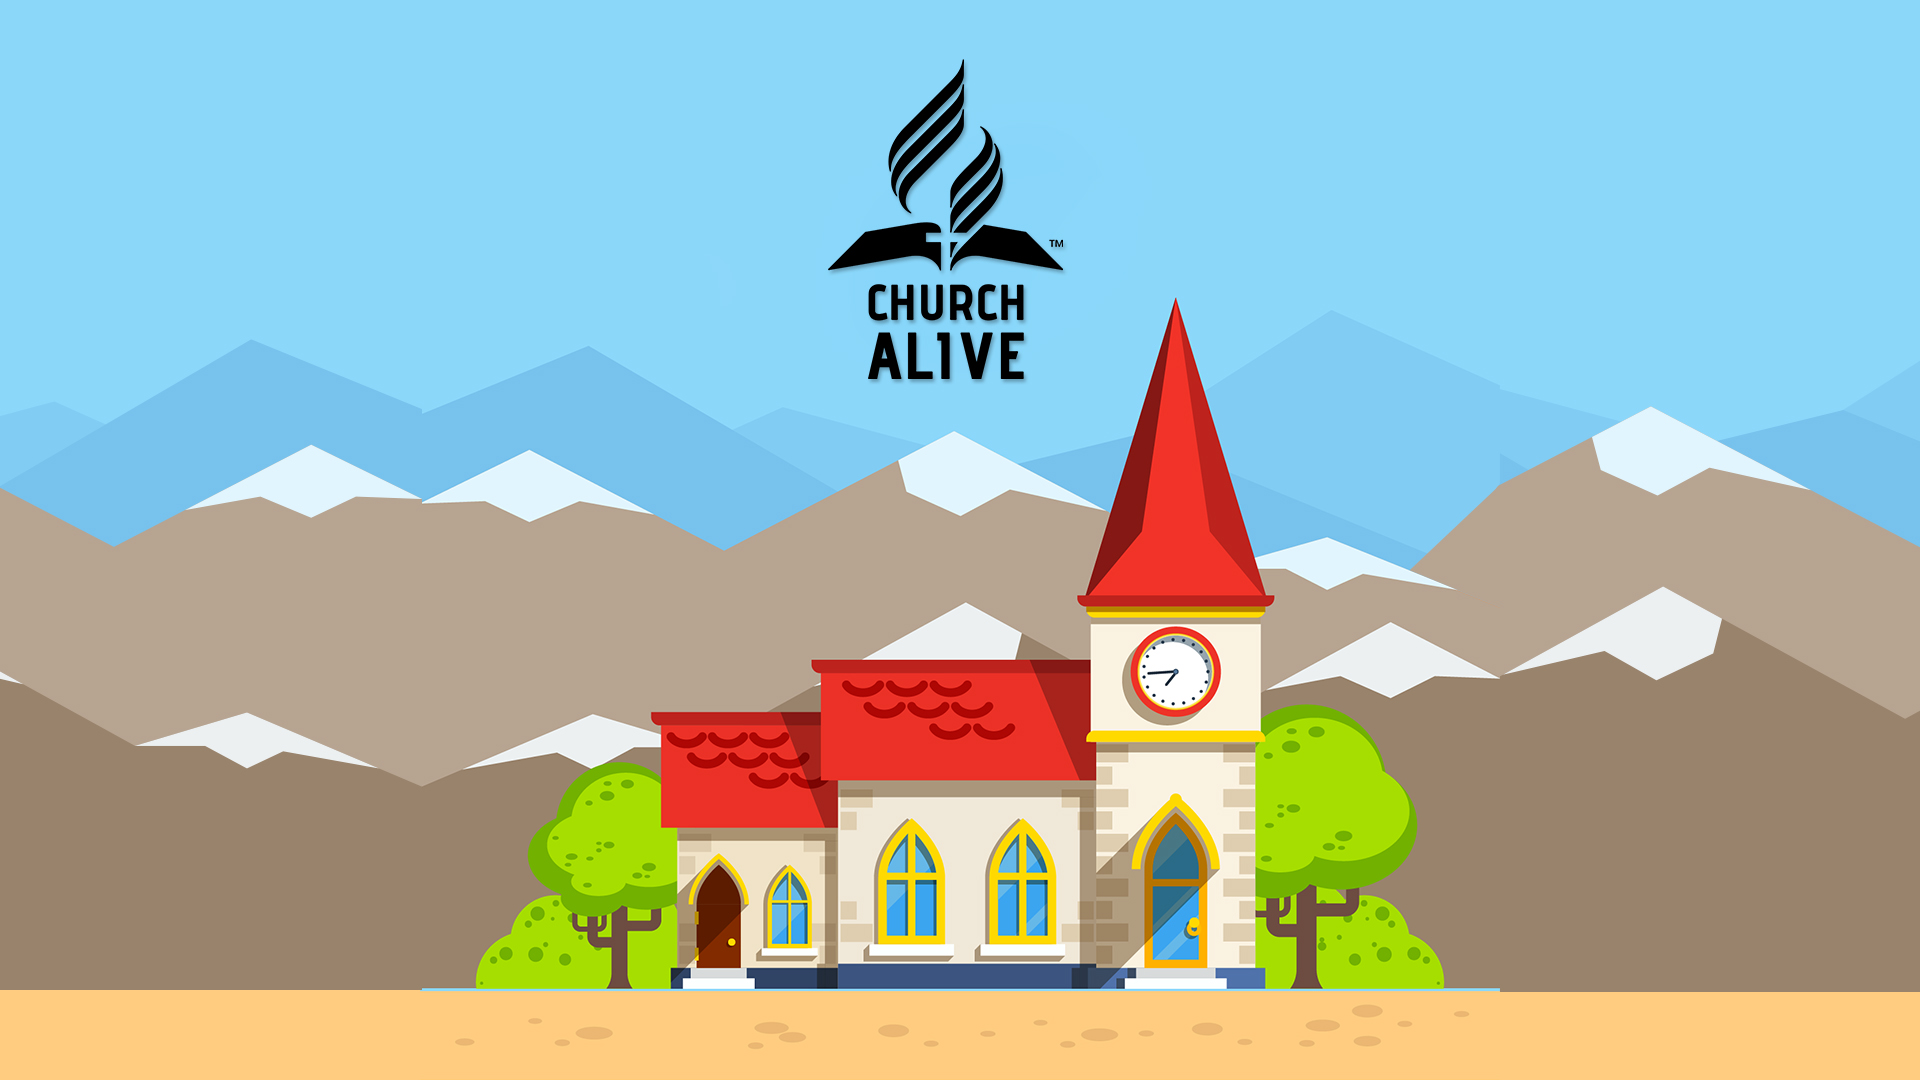 Church Alive